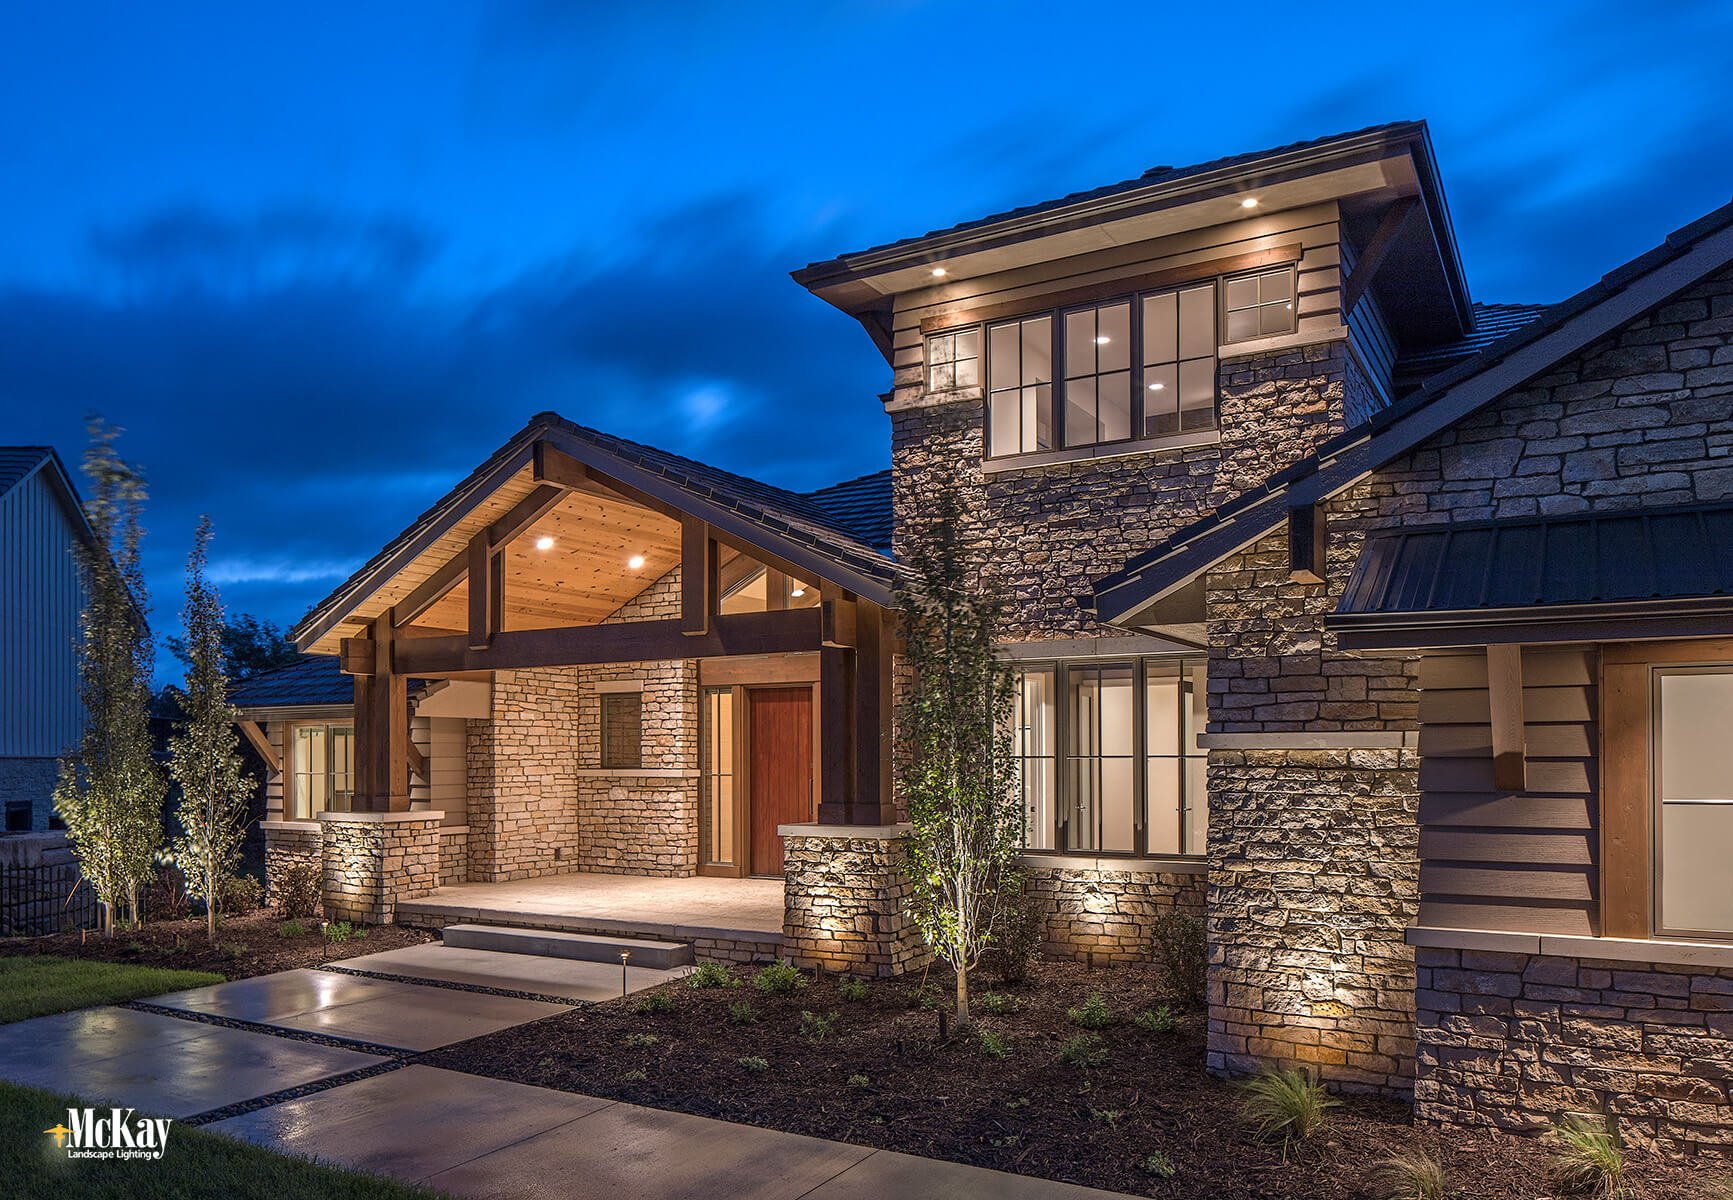 Tucked Into A Secluded Development Outside Of Omaha Nebraska You Ll Find This Stylish Modern Mountain Home The Landscape Lighting Design Elegantly